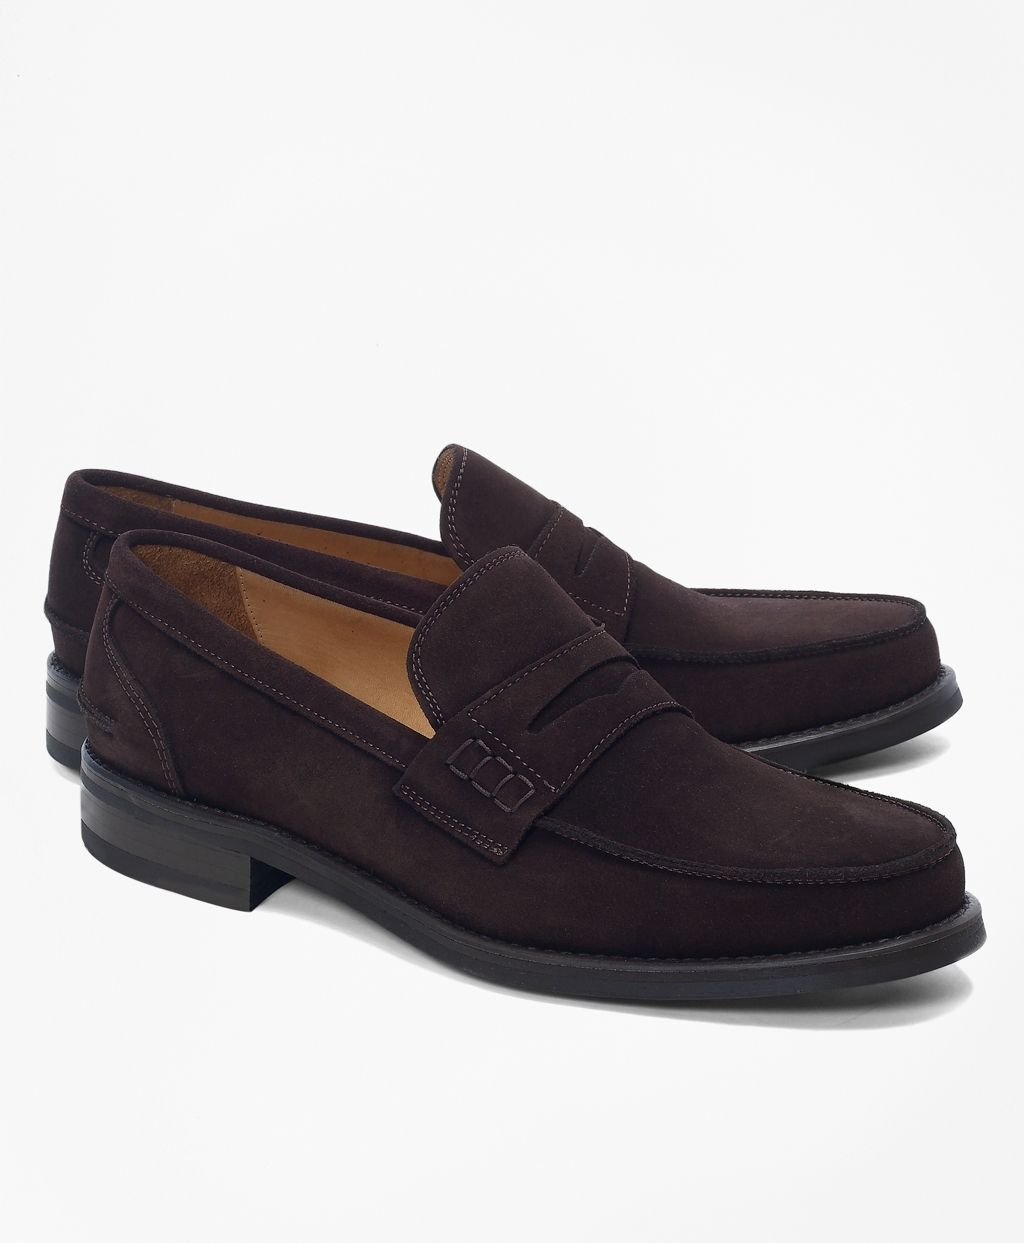 f2c39d9dbc0 Brooks Brothers Sporty Suede Penny Loafers